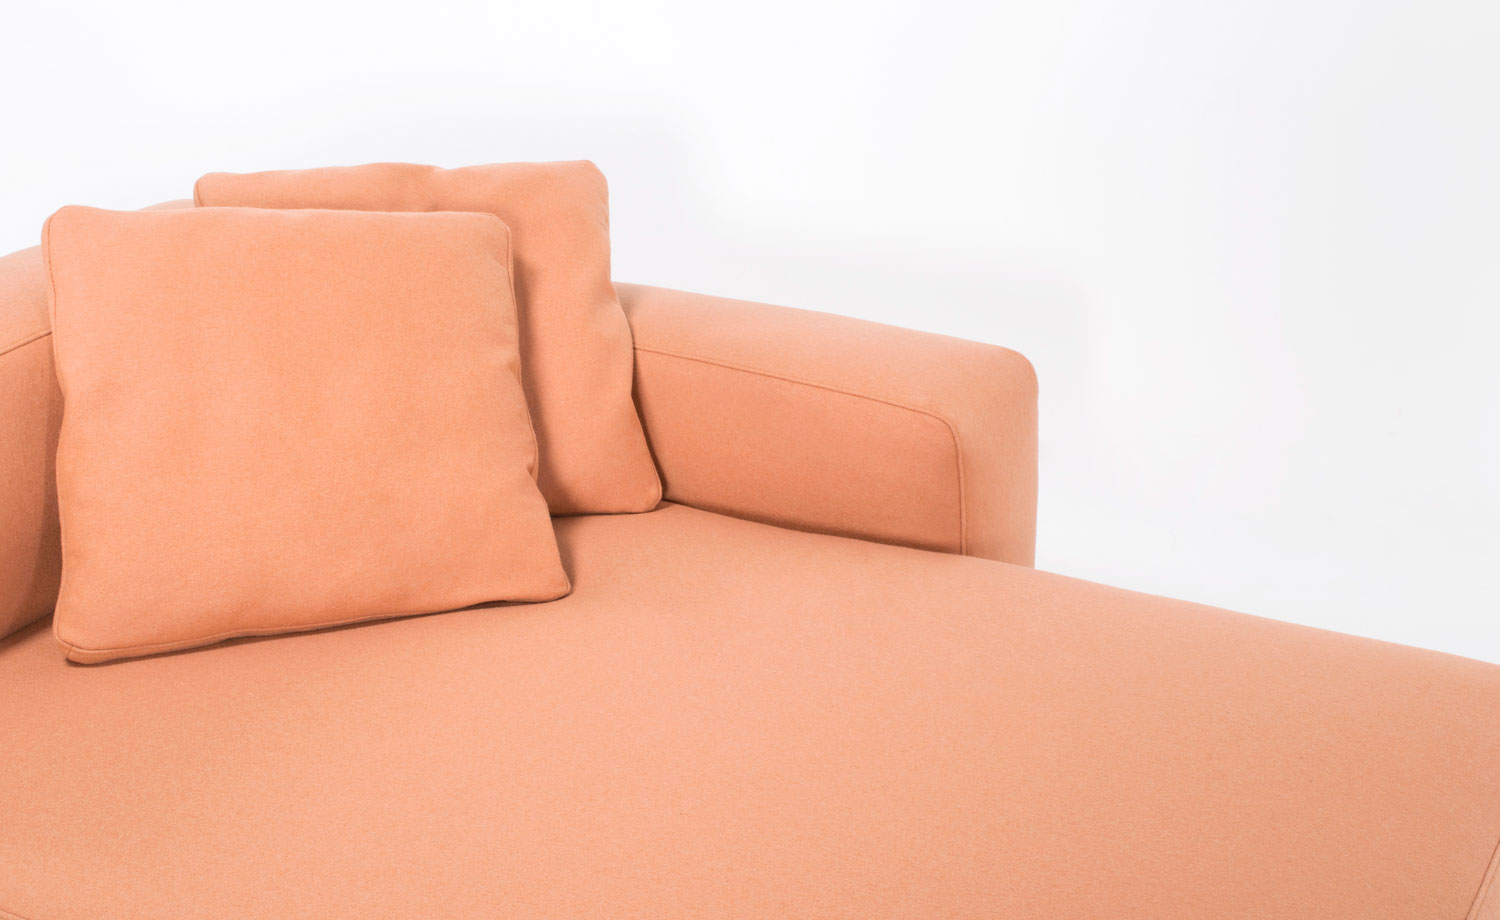 EXPO chaise longue image #8